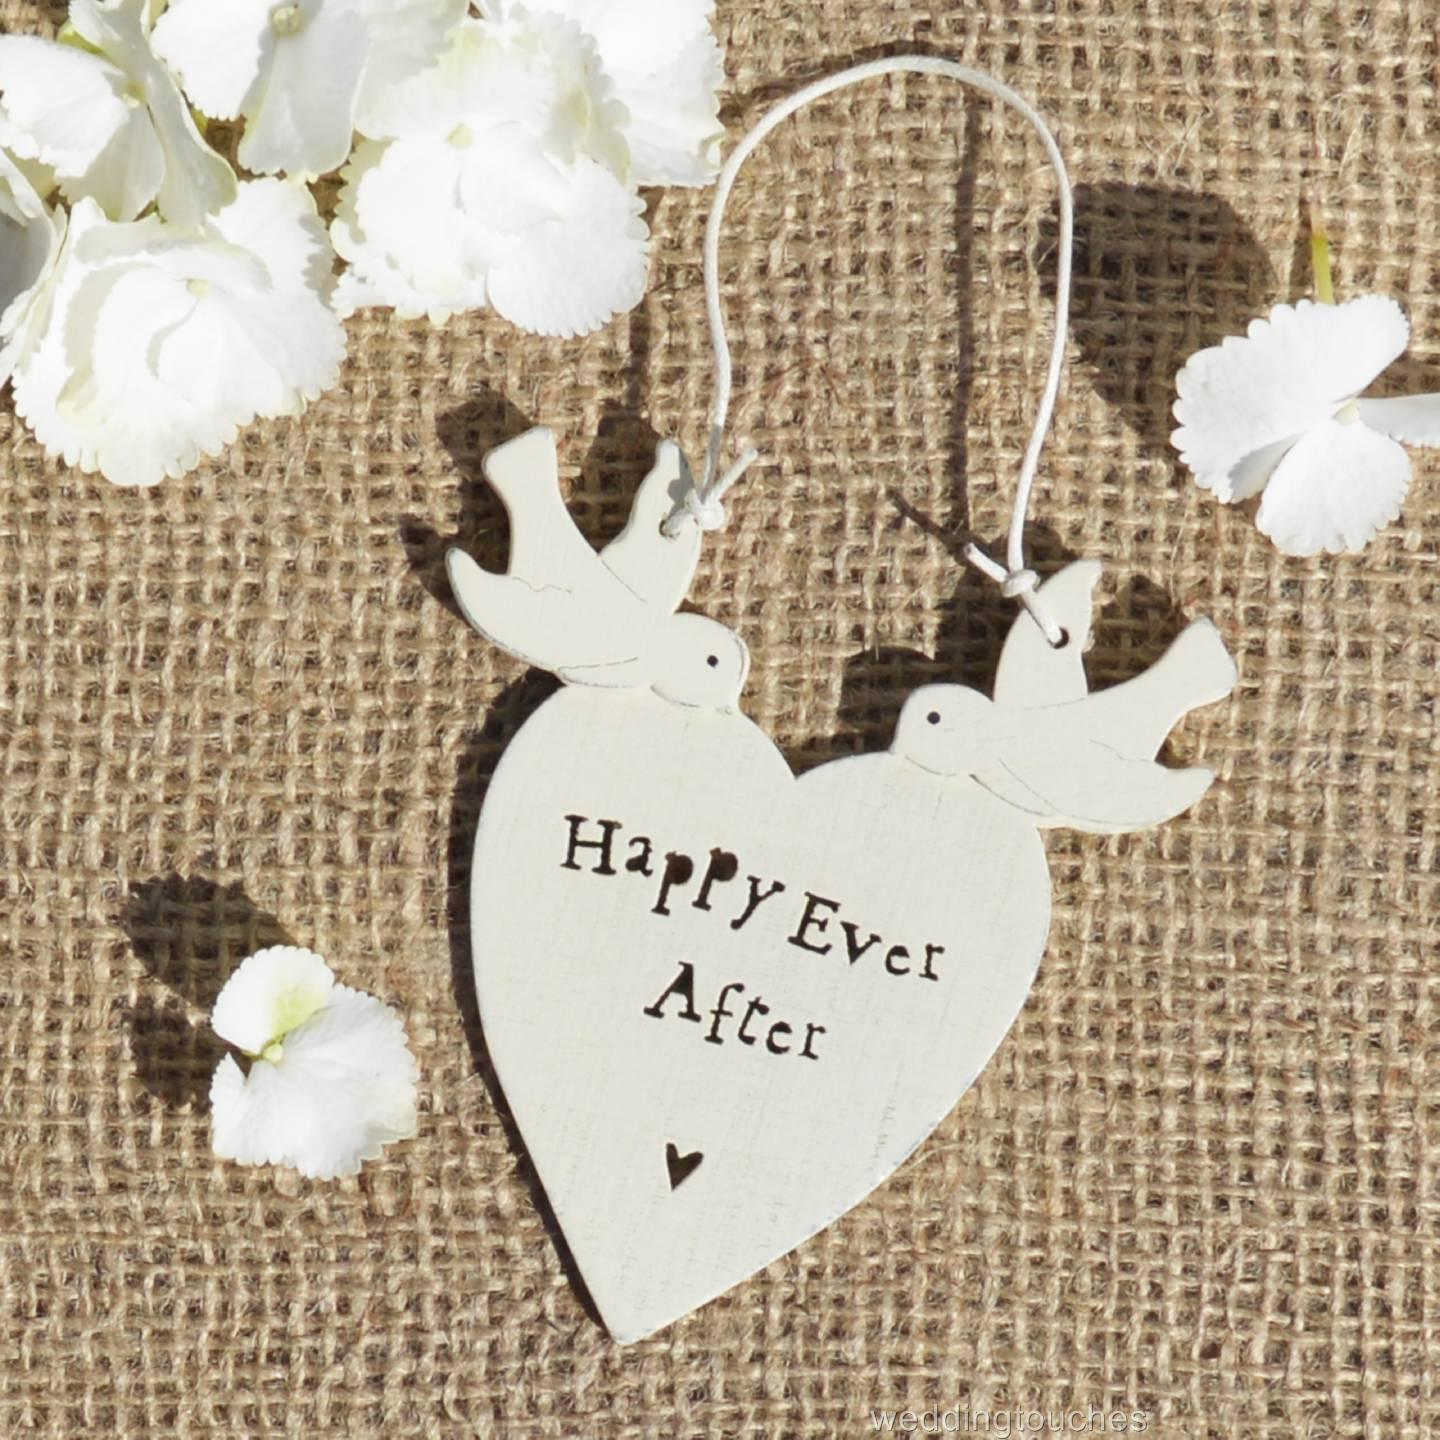 Wedding Gifts For Bride Groom In India : East-Of-India-Wedding-Heart-Sign-Horsehoe-Mr-amp-Mrs-Bride-Groom-Just ...